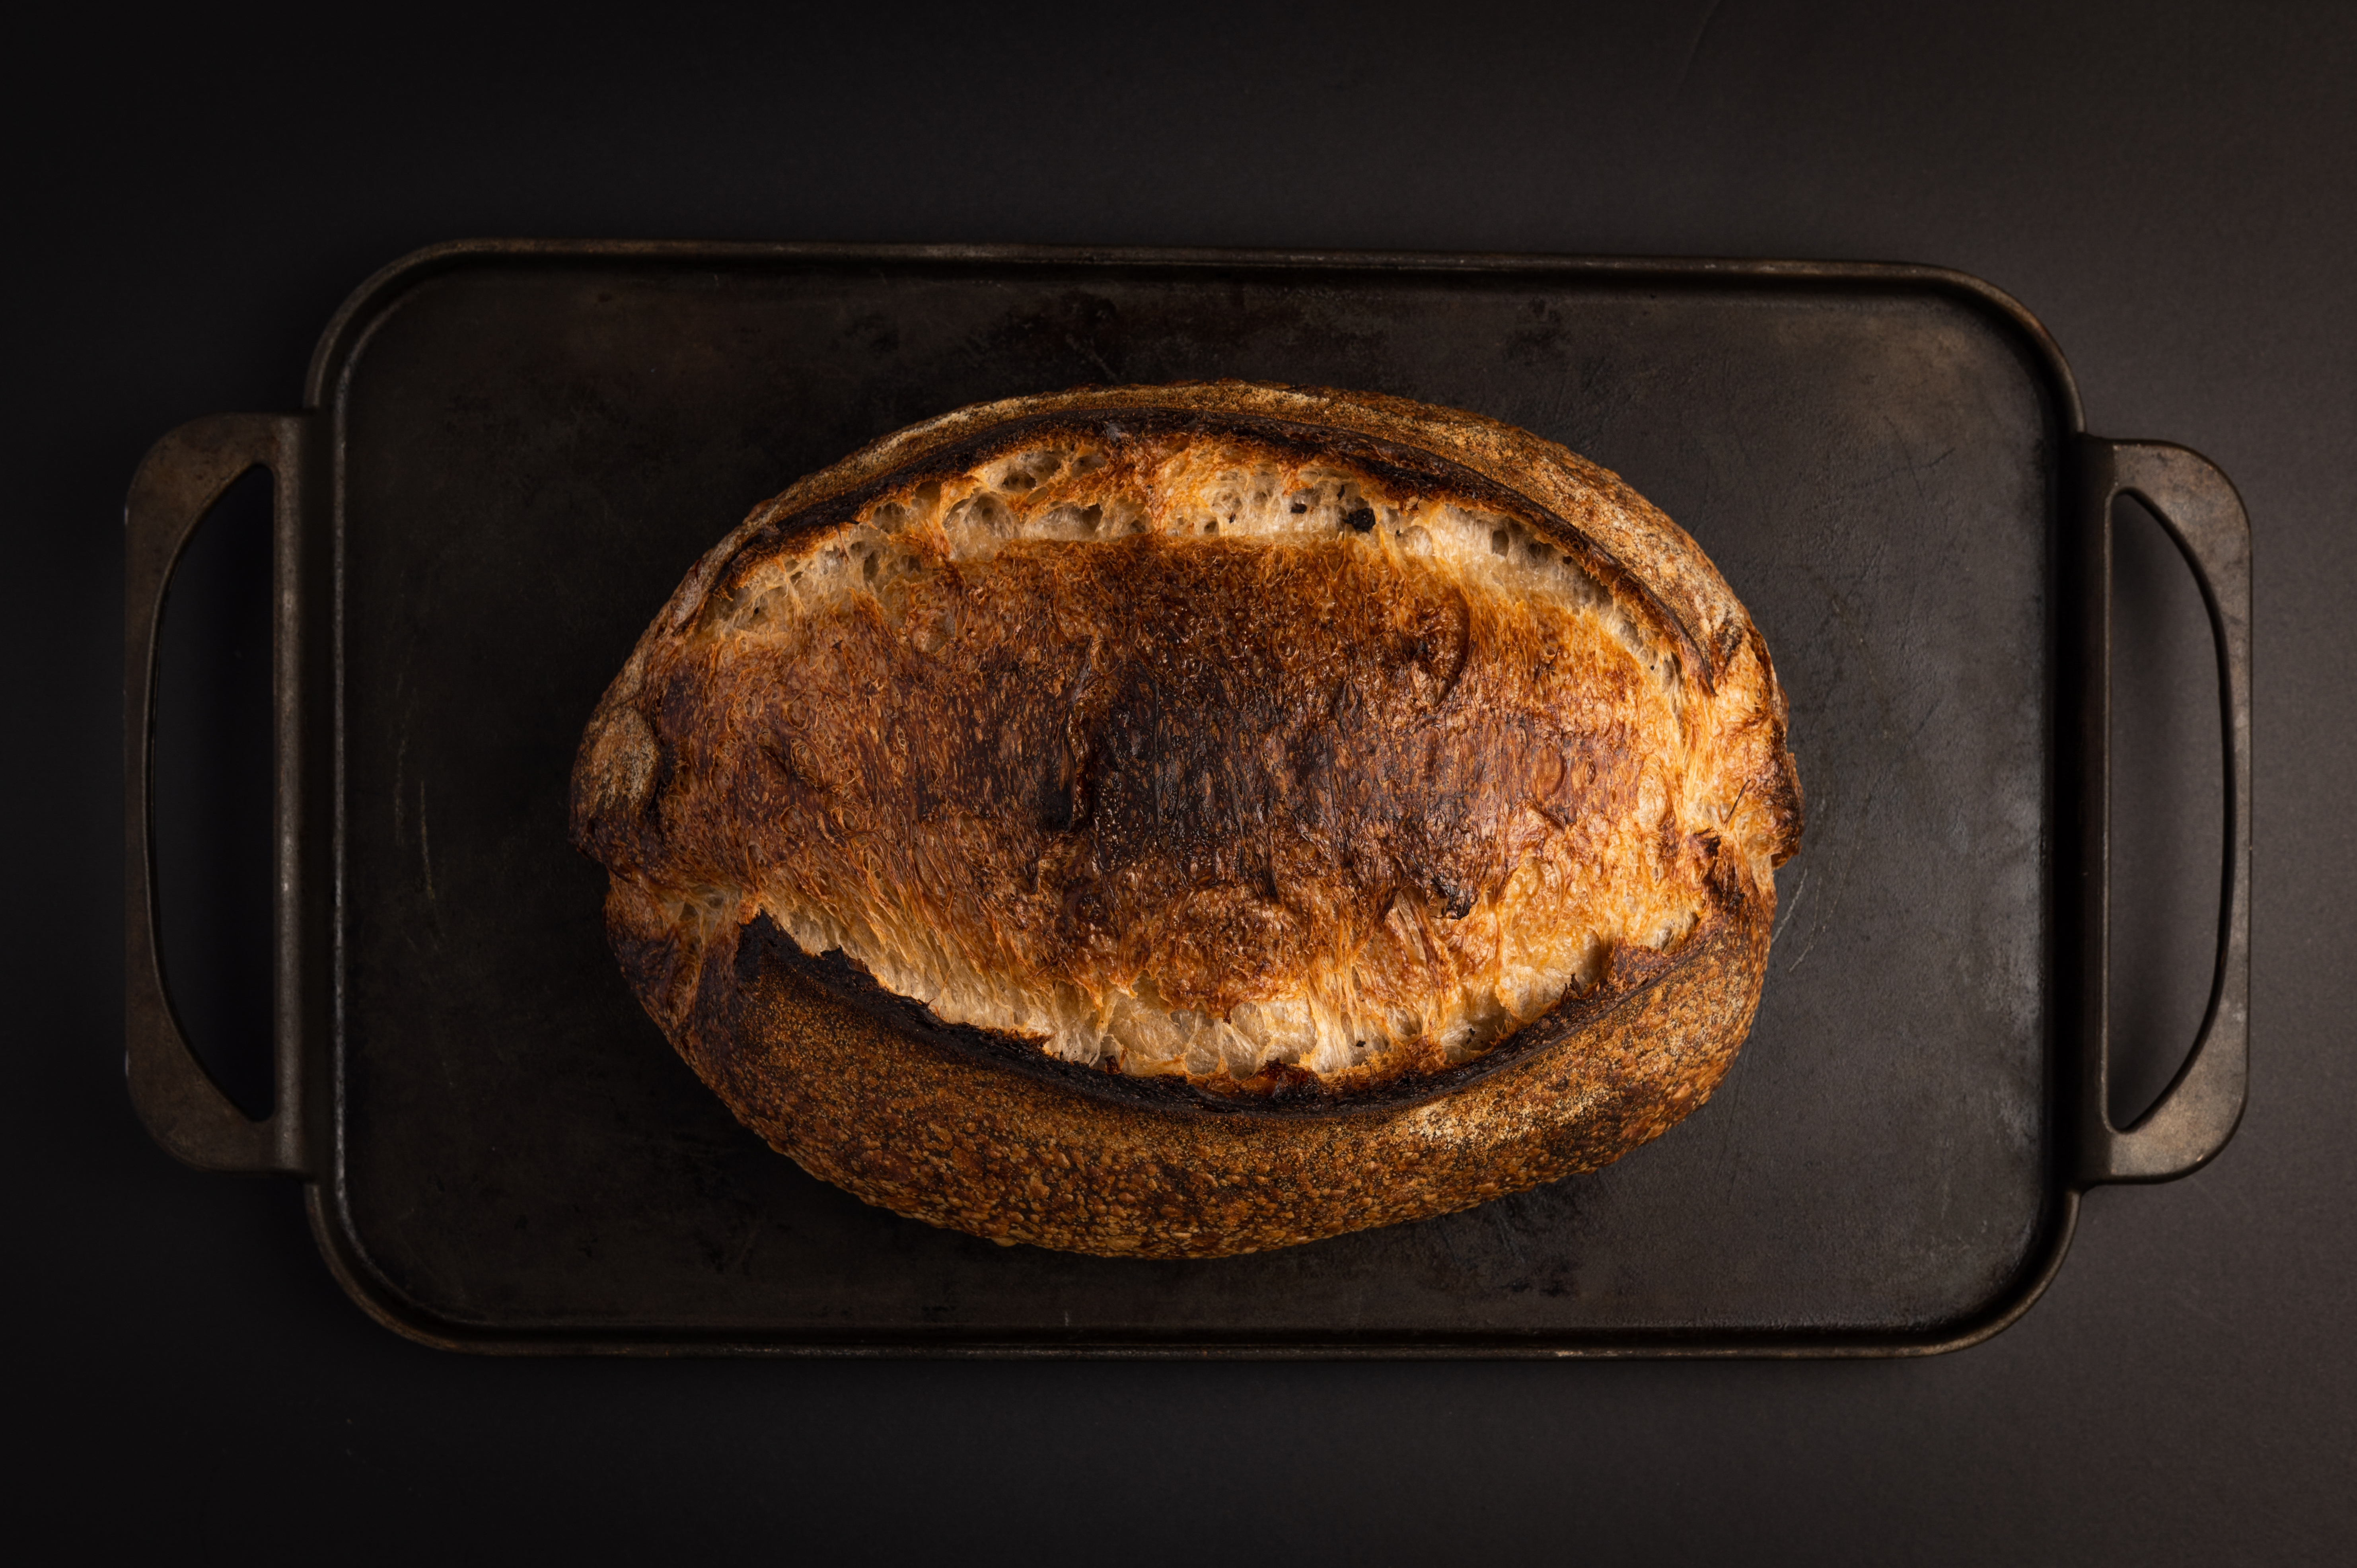 A step by step guide to understanding how you can bake professional quality sourdough with consistently at home.